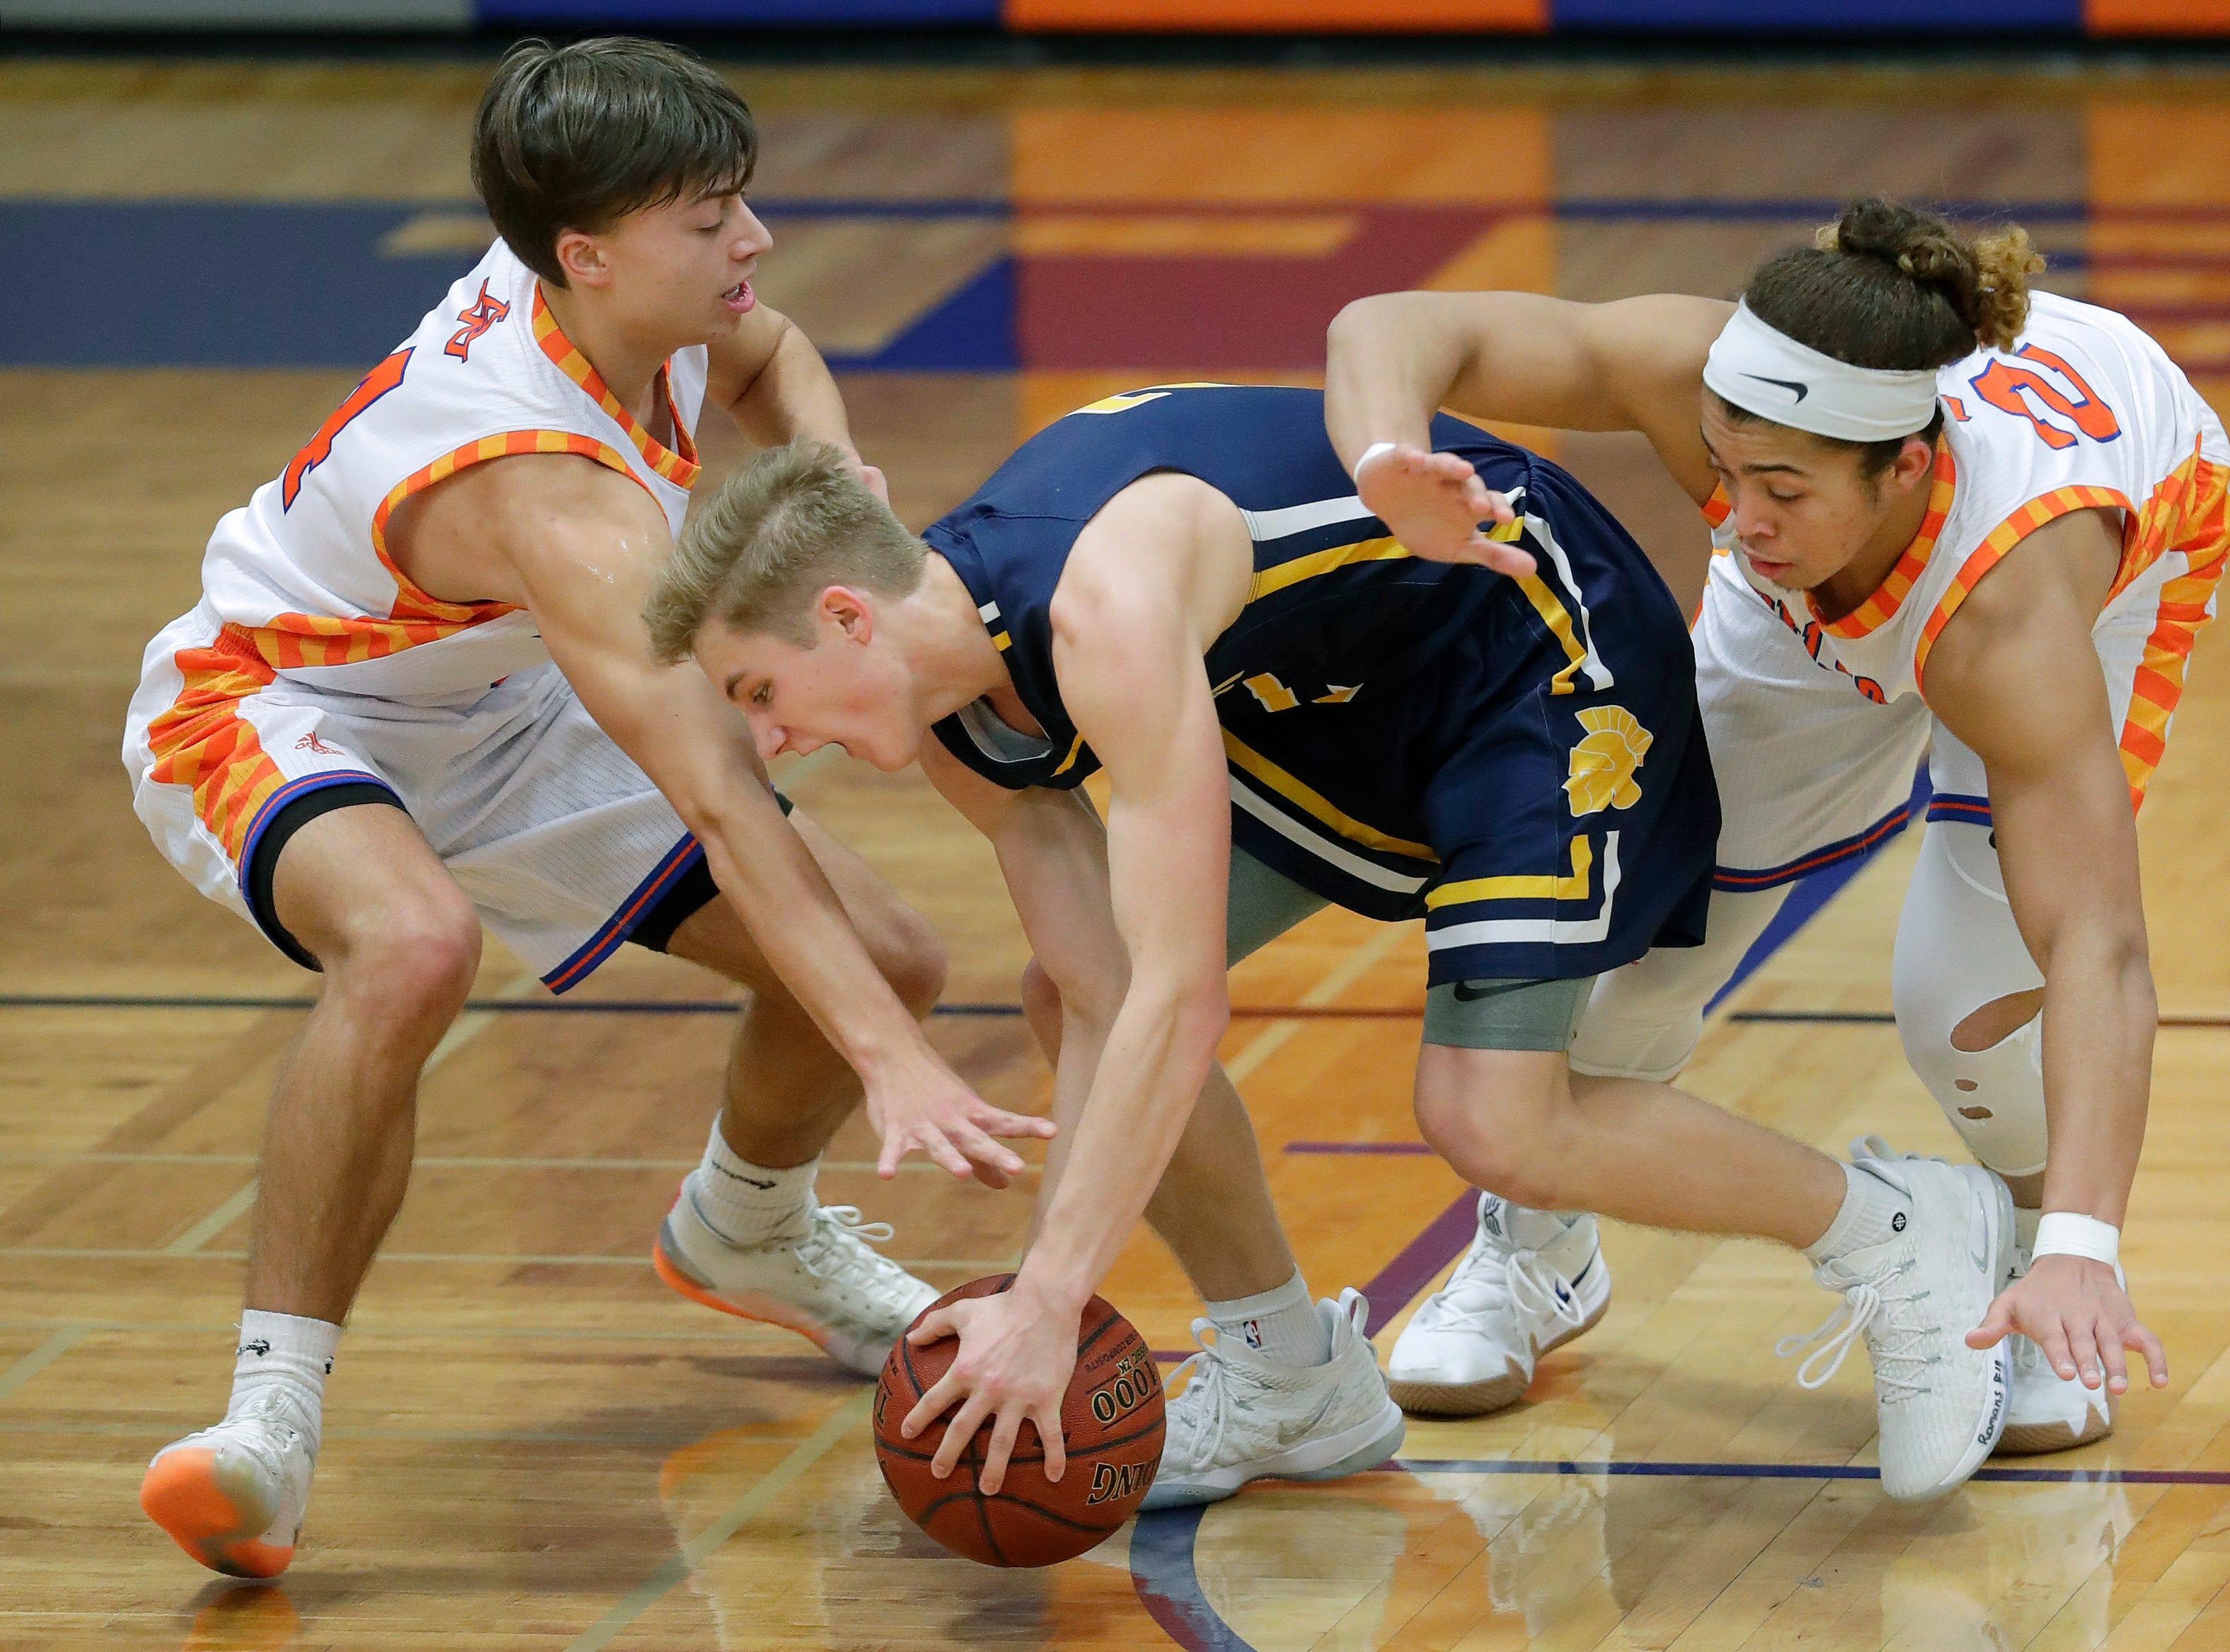 Appleton West  High School's Eli Vogel , left, and Bubba Thompson, right, defend against Wausau West High School's Mitchell Zahurones (2) during their boys basketball game Friday, December 28, 2018, in Appleton, Wis. 